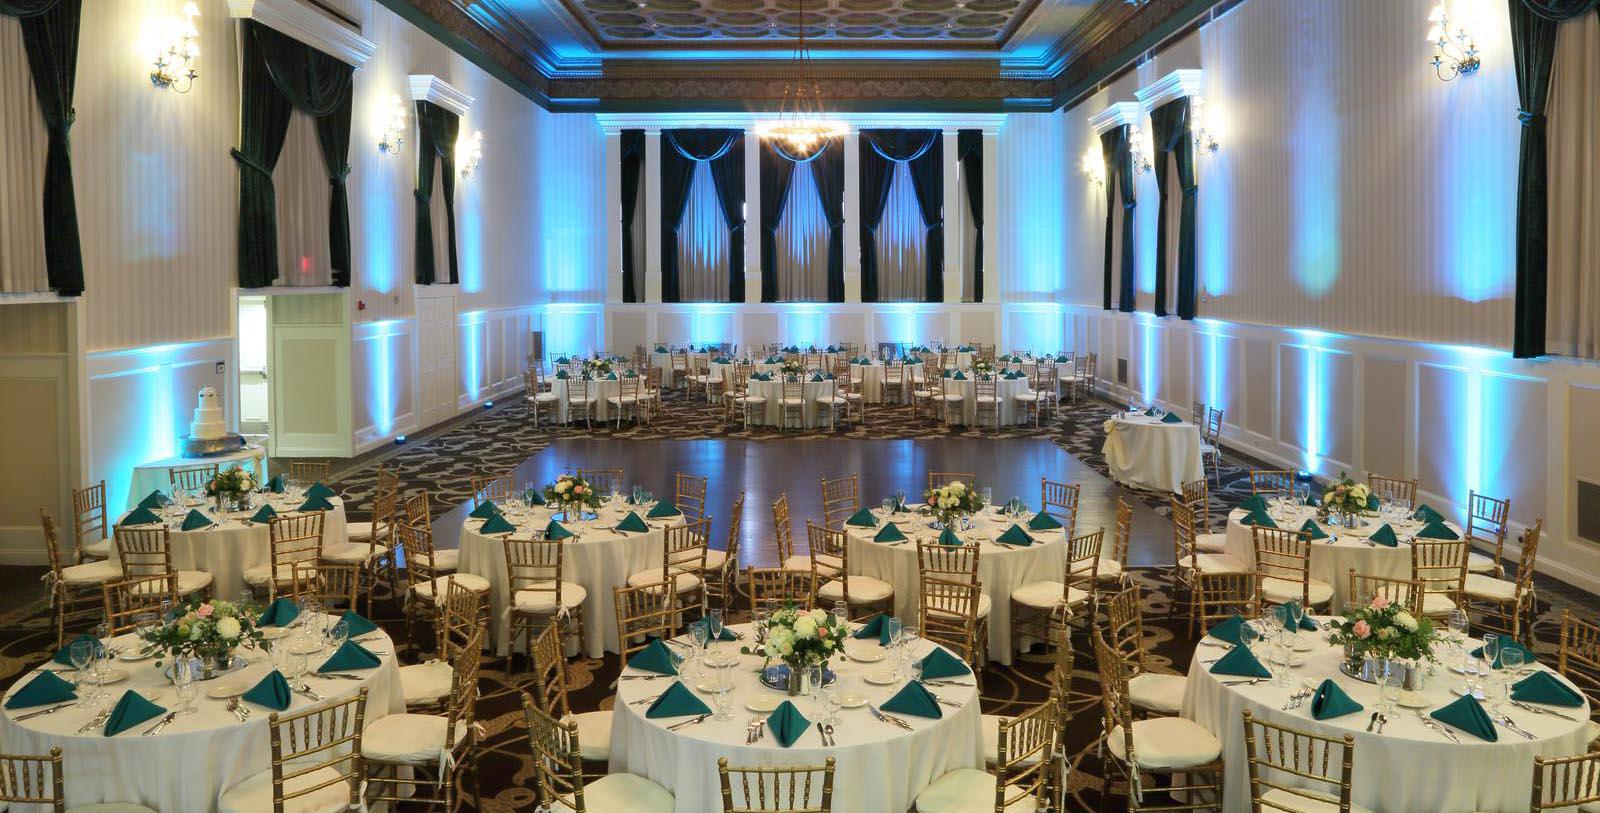 Image of grand meeting hall wedding reception at Gettysburg Hotel, Est.1797, Member of Historic Hotels of America, in Gettysburg, Pennsylvania, Experience